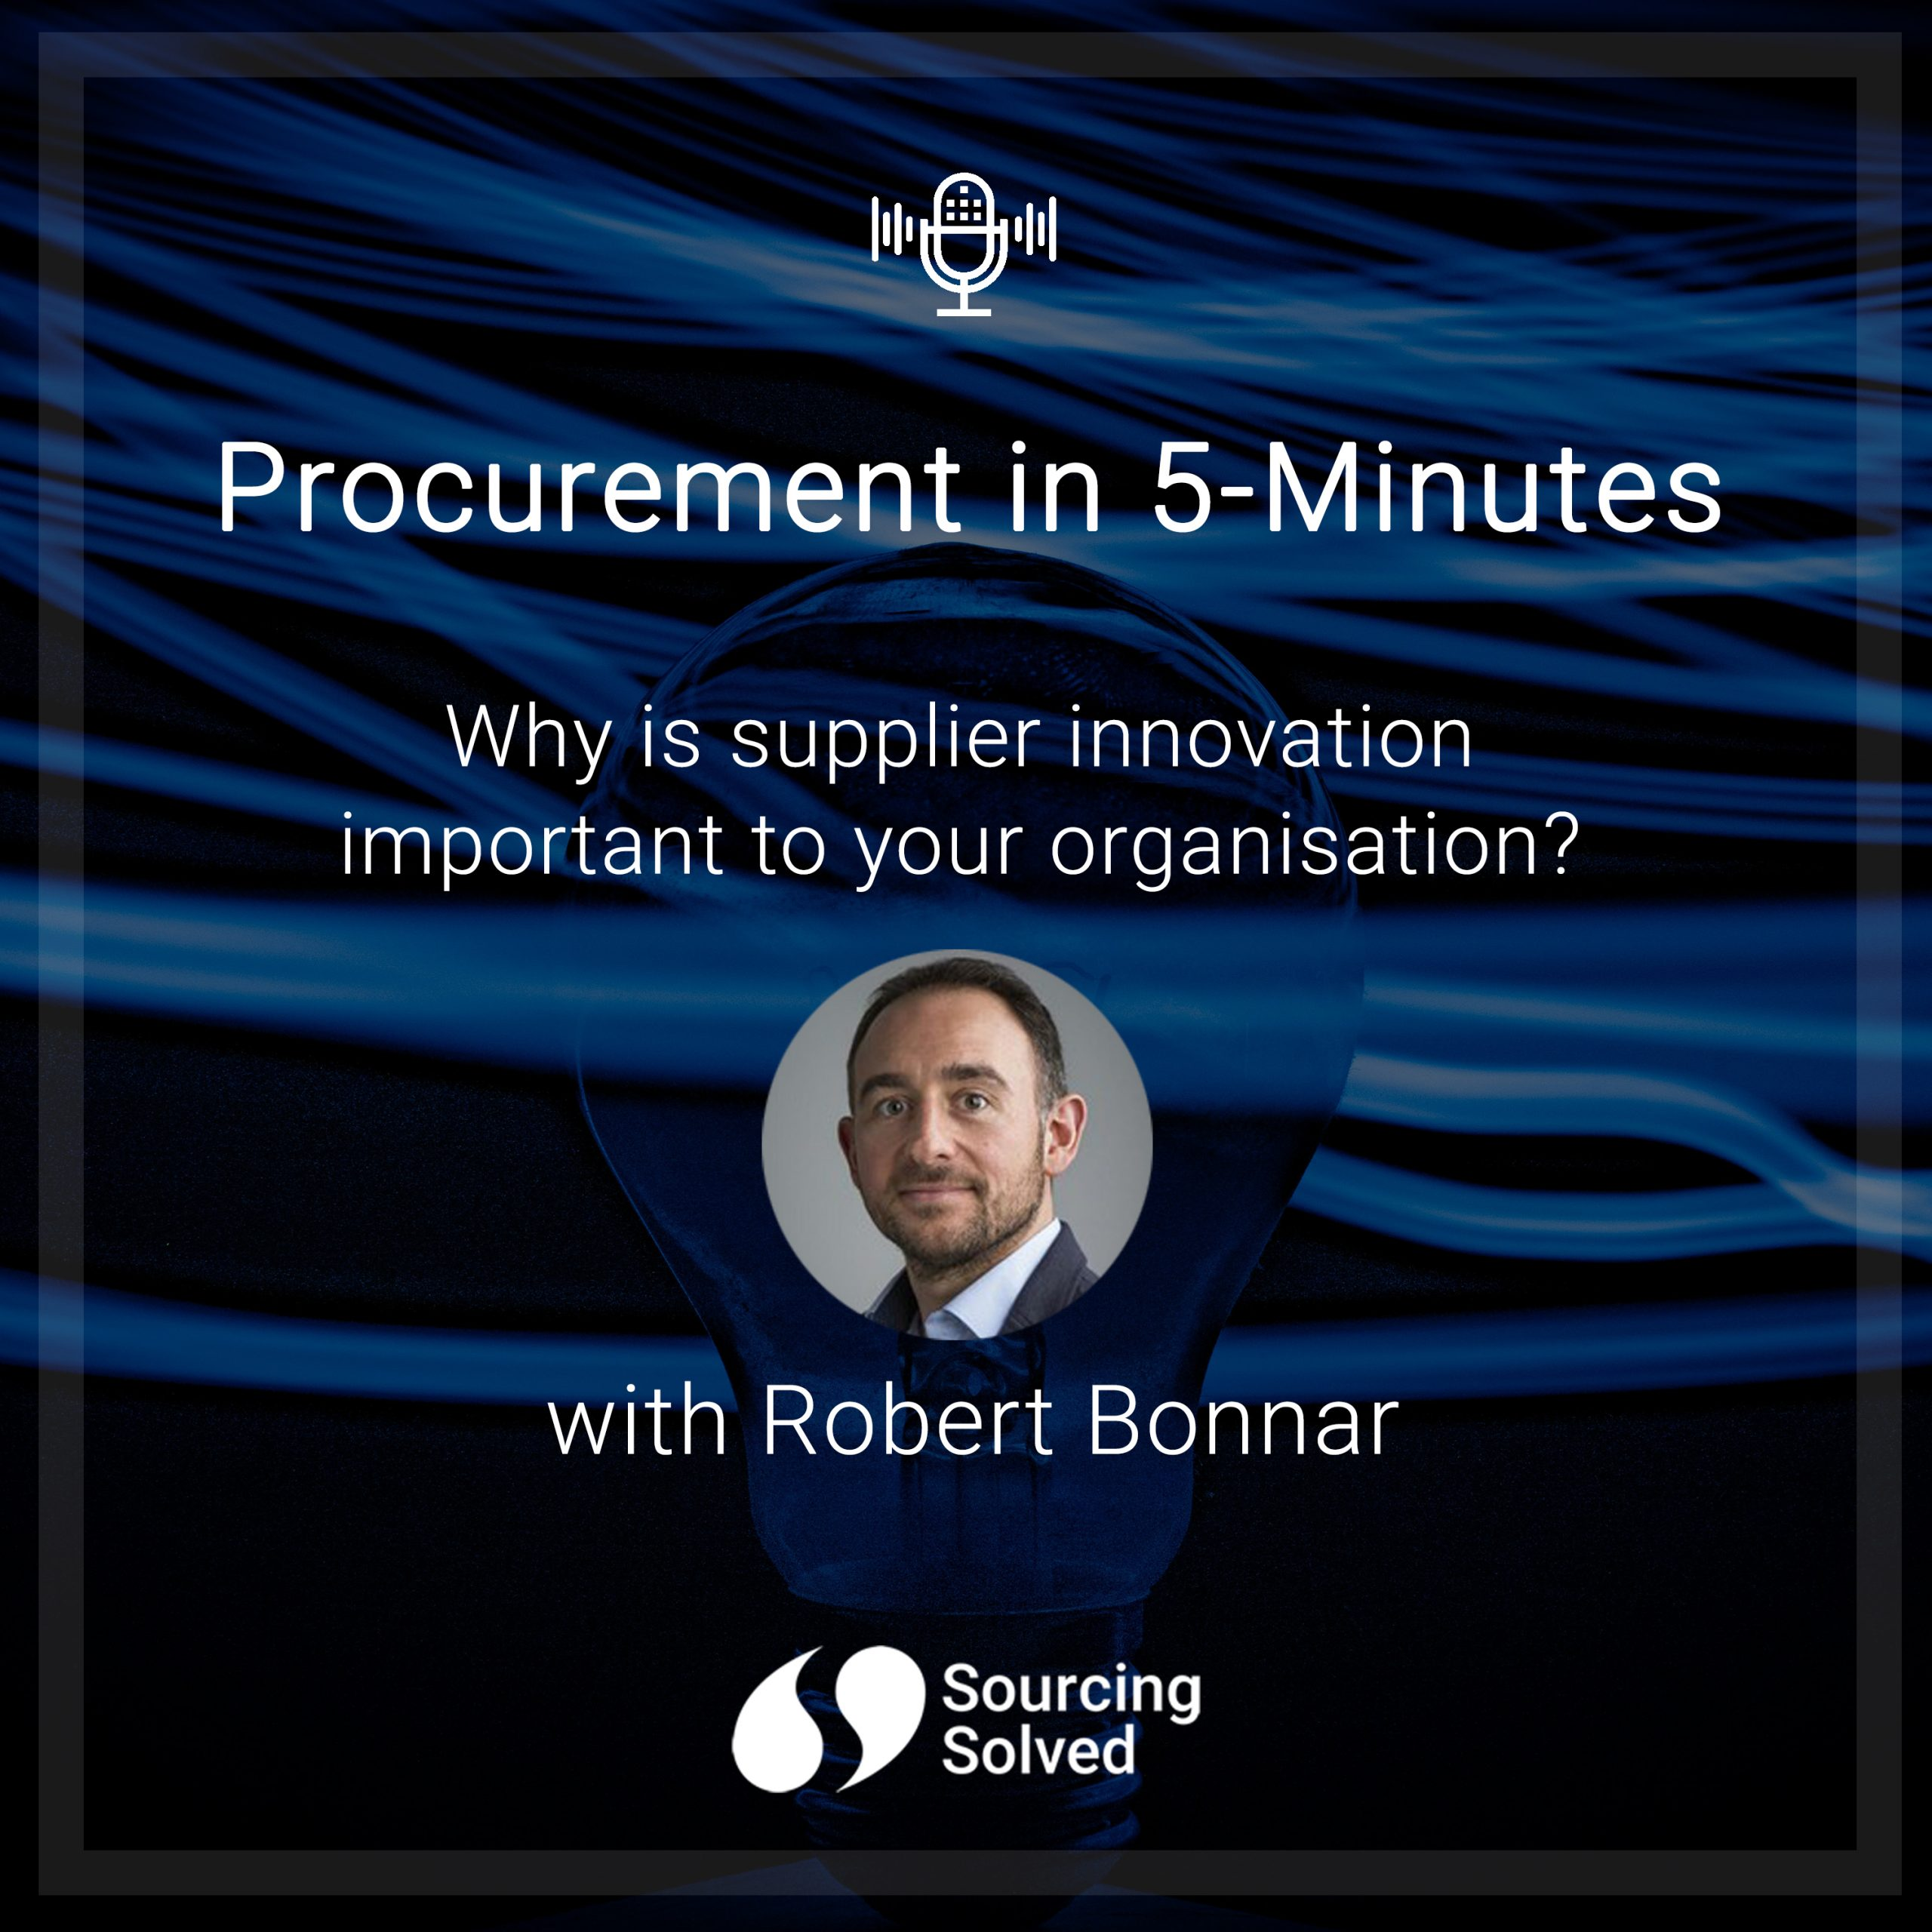 Procurement in 5-Minutes: Why is supplier innovation important to your organisation?